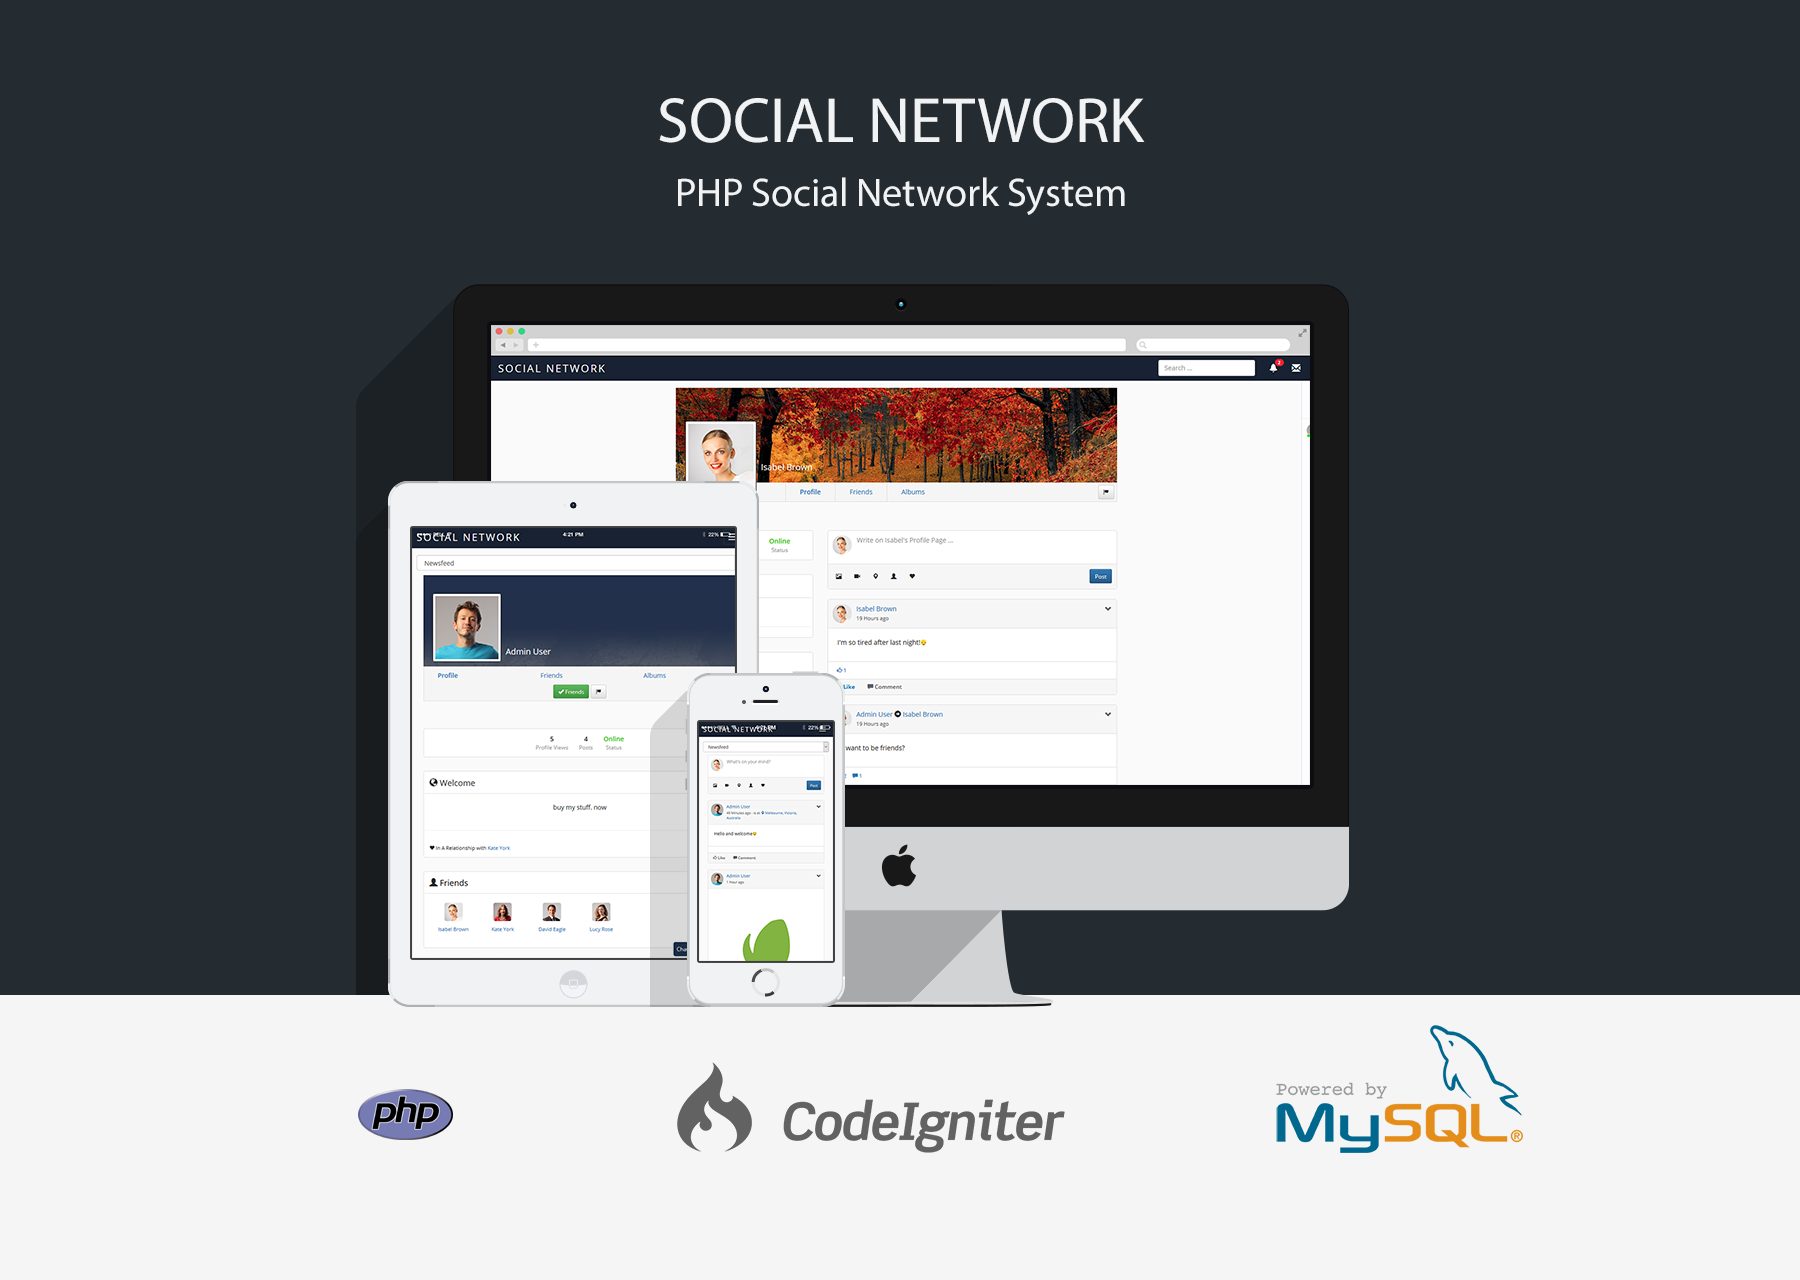 Social network php social networking system by for Social networking sites templates php